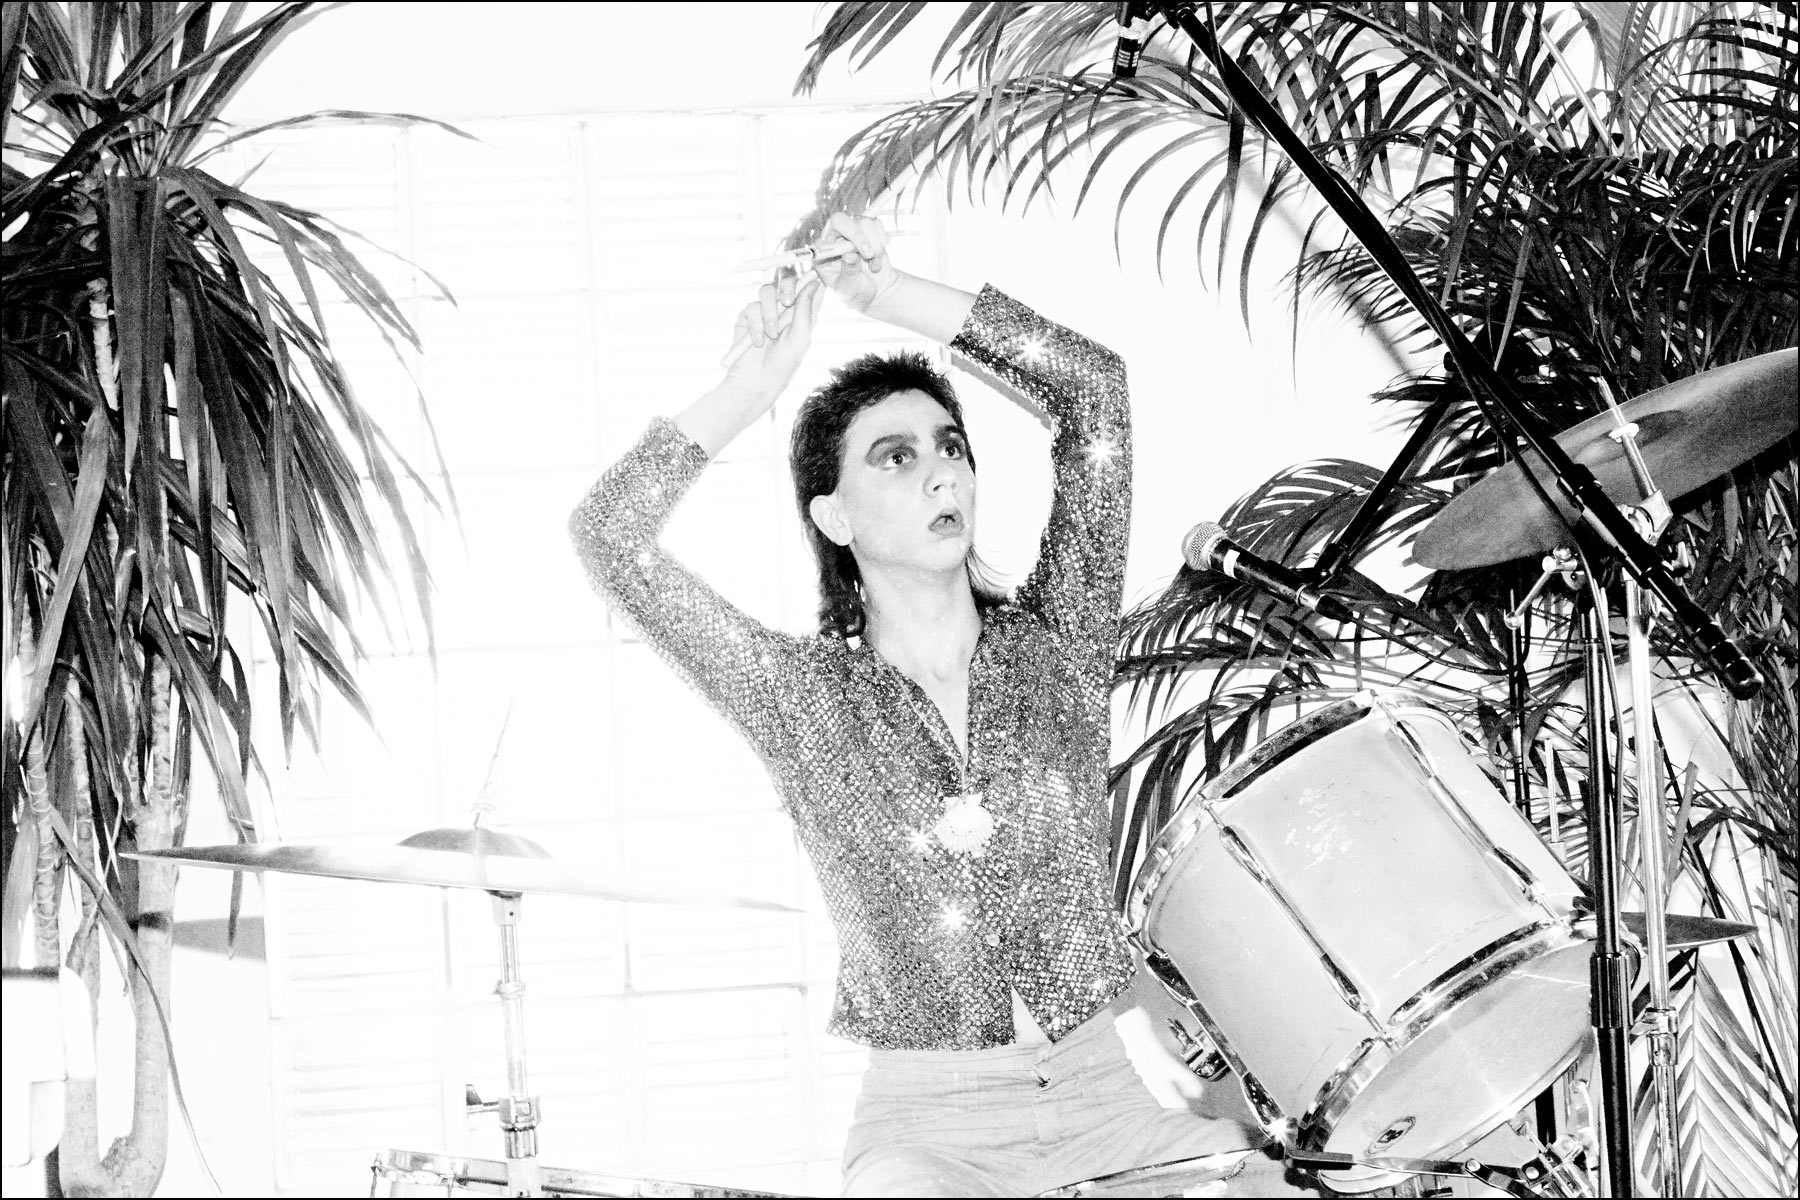 Brian D'Addario on drums, from New York City band The Lemon Twigs. Photographed by Alexander Thompson for Ponyboy magazine New York.